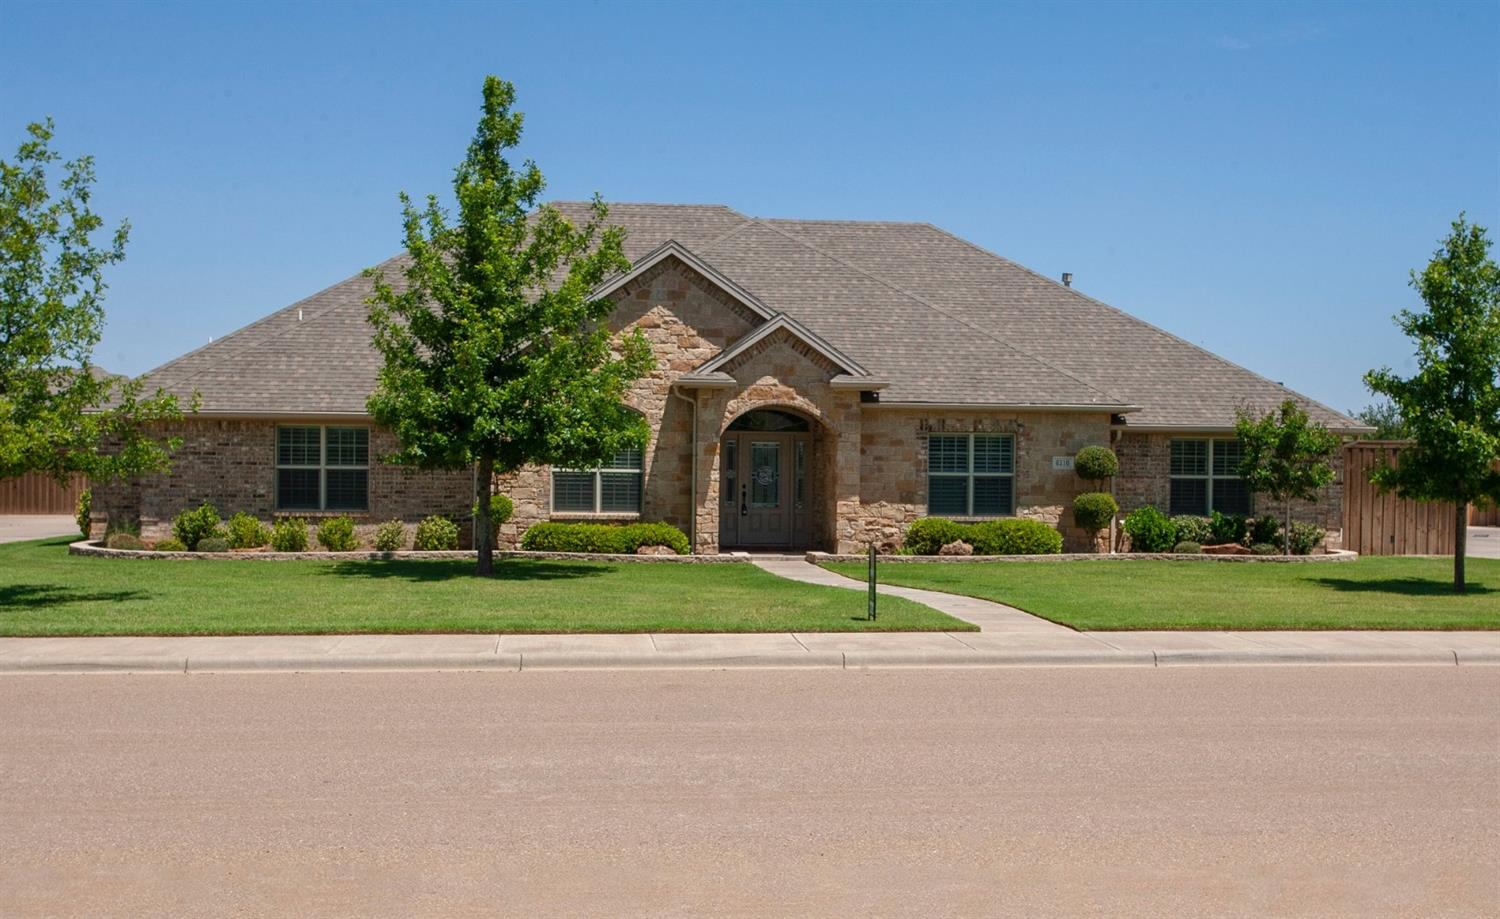 This gorgeous 4 bedroom 3.5 bath is located in Lubbock- Cooper District in Fountain Hills Estates! This home is great for entertaining with an amazing floor plan, basement, and pool! Don't miss out on your chance to own this gorgeous home!